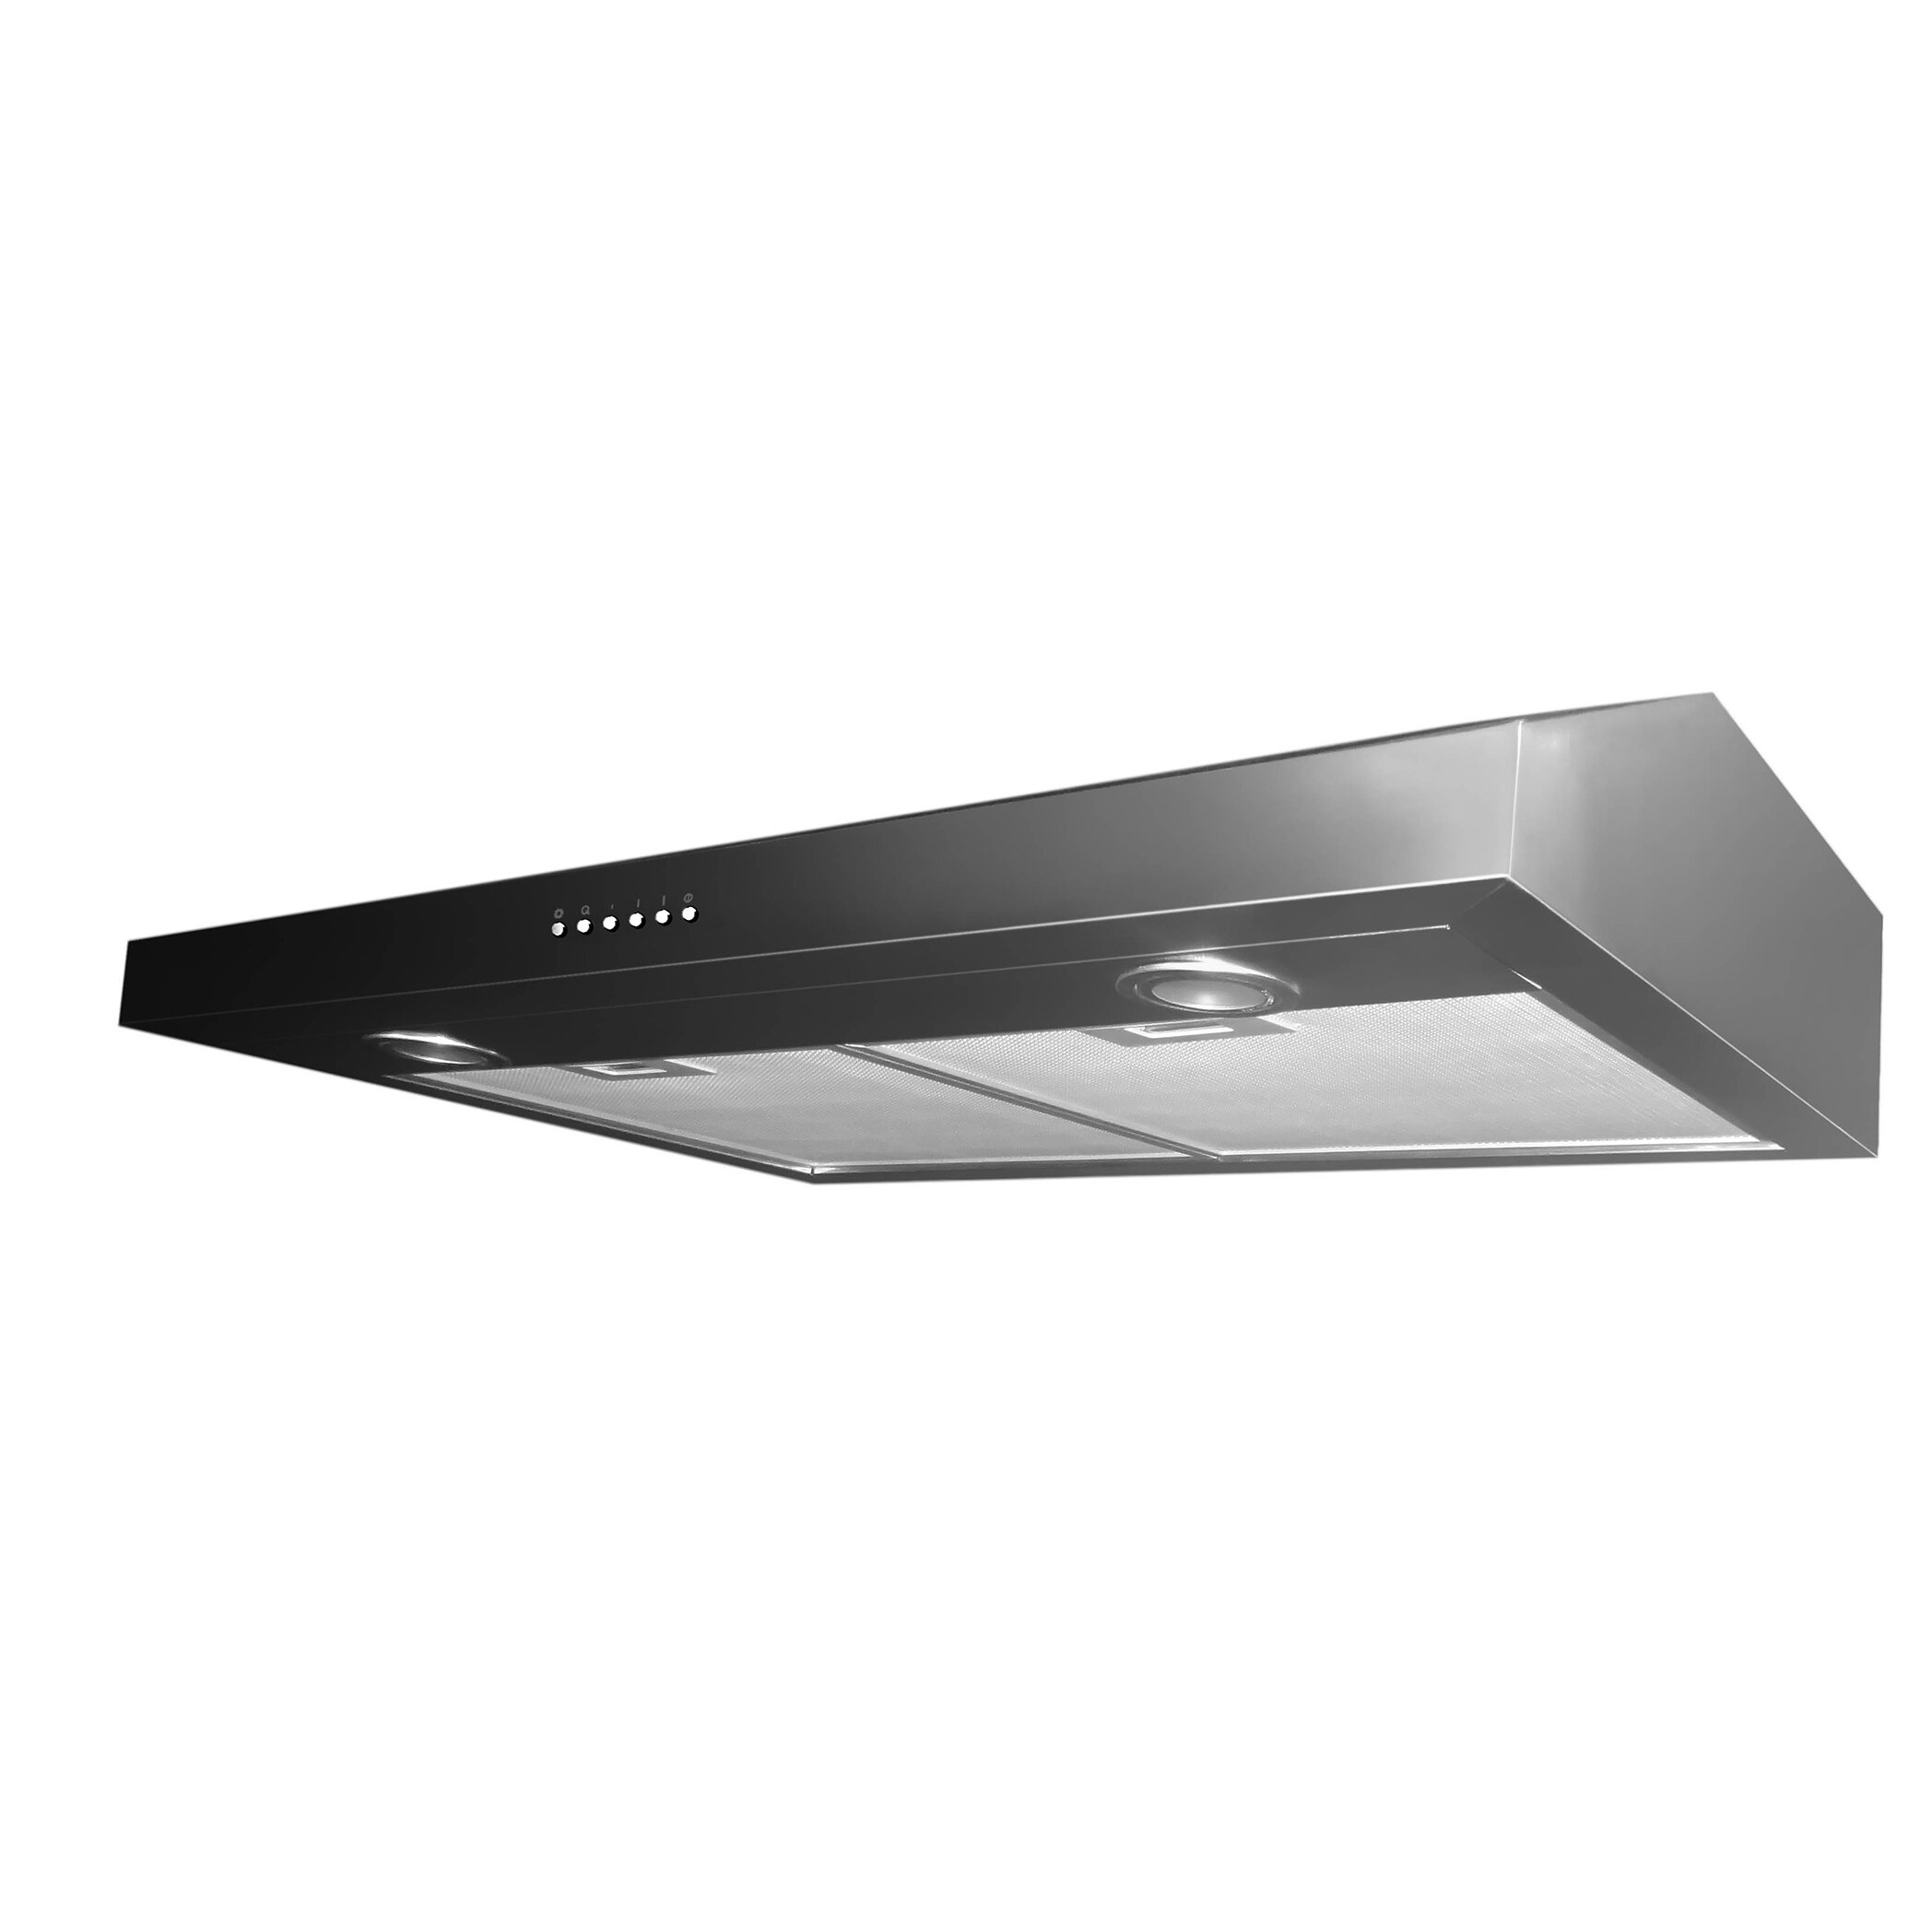 kitchenaid hood fan. kitchenaid 600 cfm range hood fan